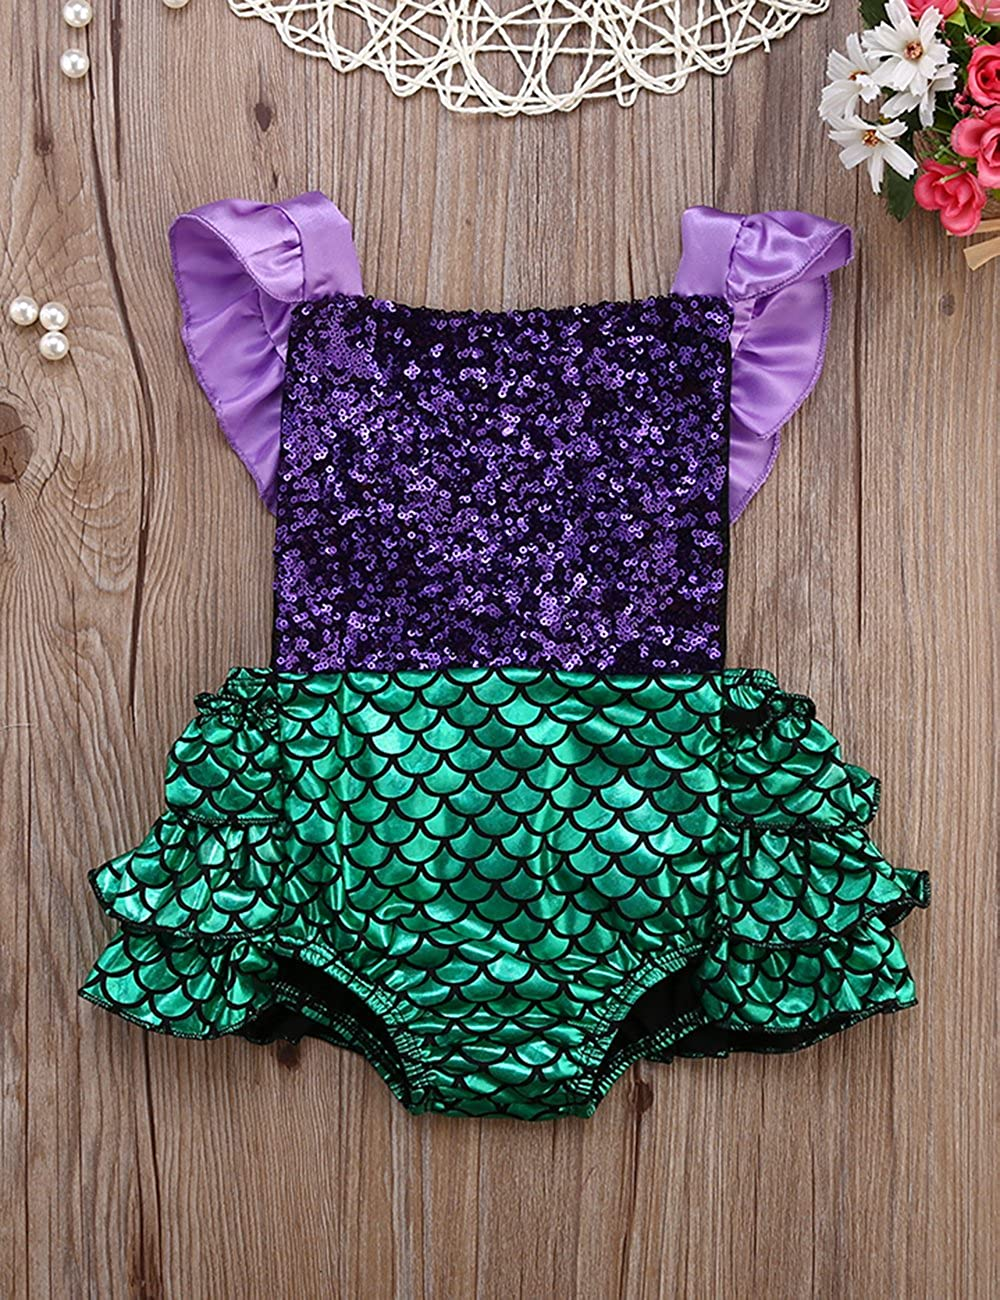 Gogoboi Mermaid Clothes Sleeveless Bodysuit Romper for Baby Girl